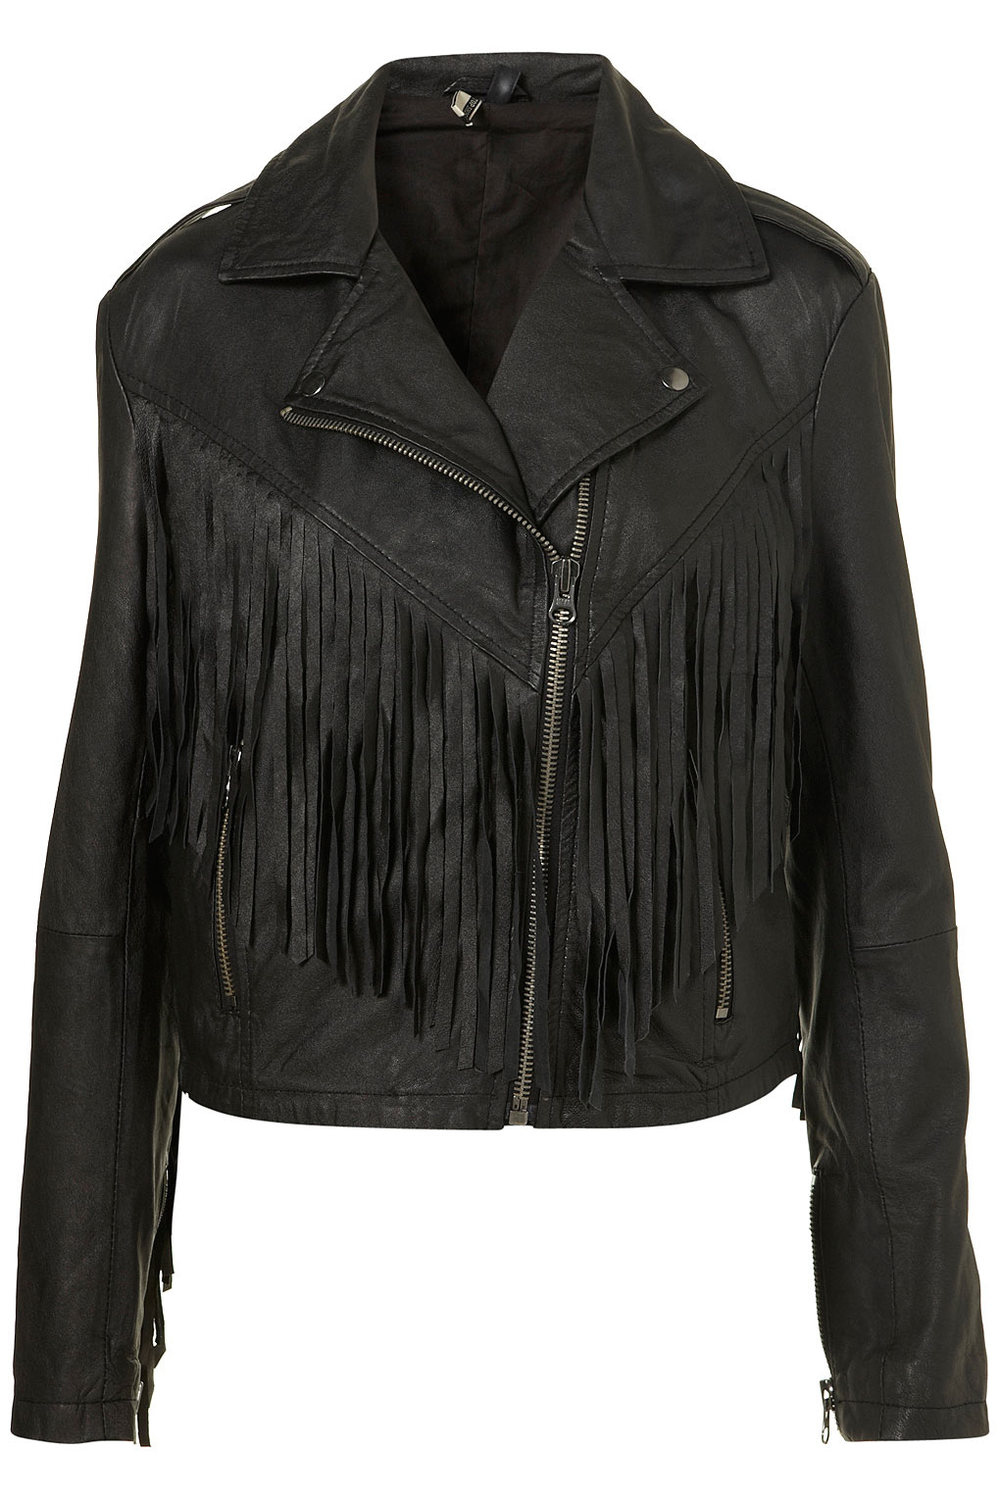 Inspired Look   Fringed Leather Biker Jacket    Price: $370.00